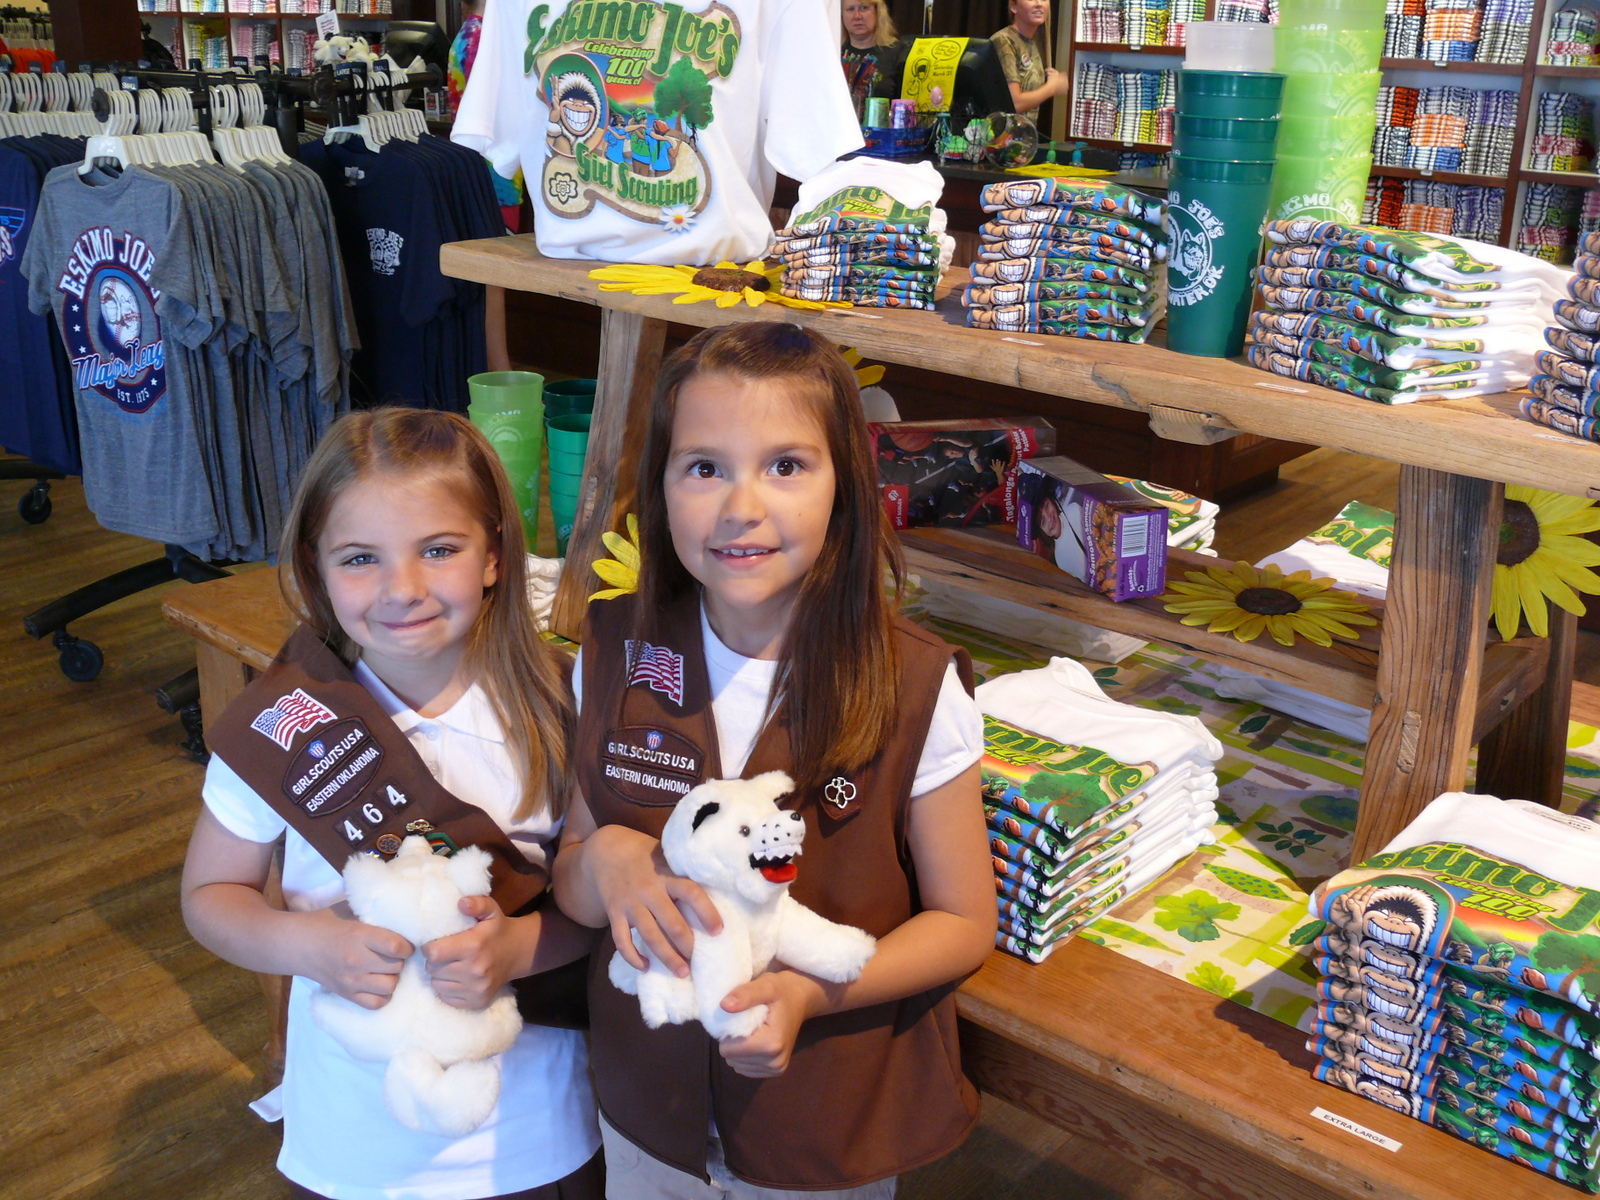 Girl Scouts Kirstyn and Lydia pose with Eskimo Joe's new 100th anniversary tee for Girl Scouts.